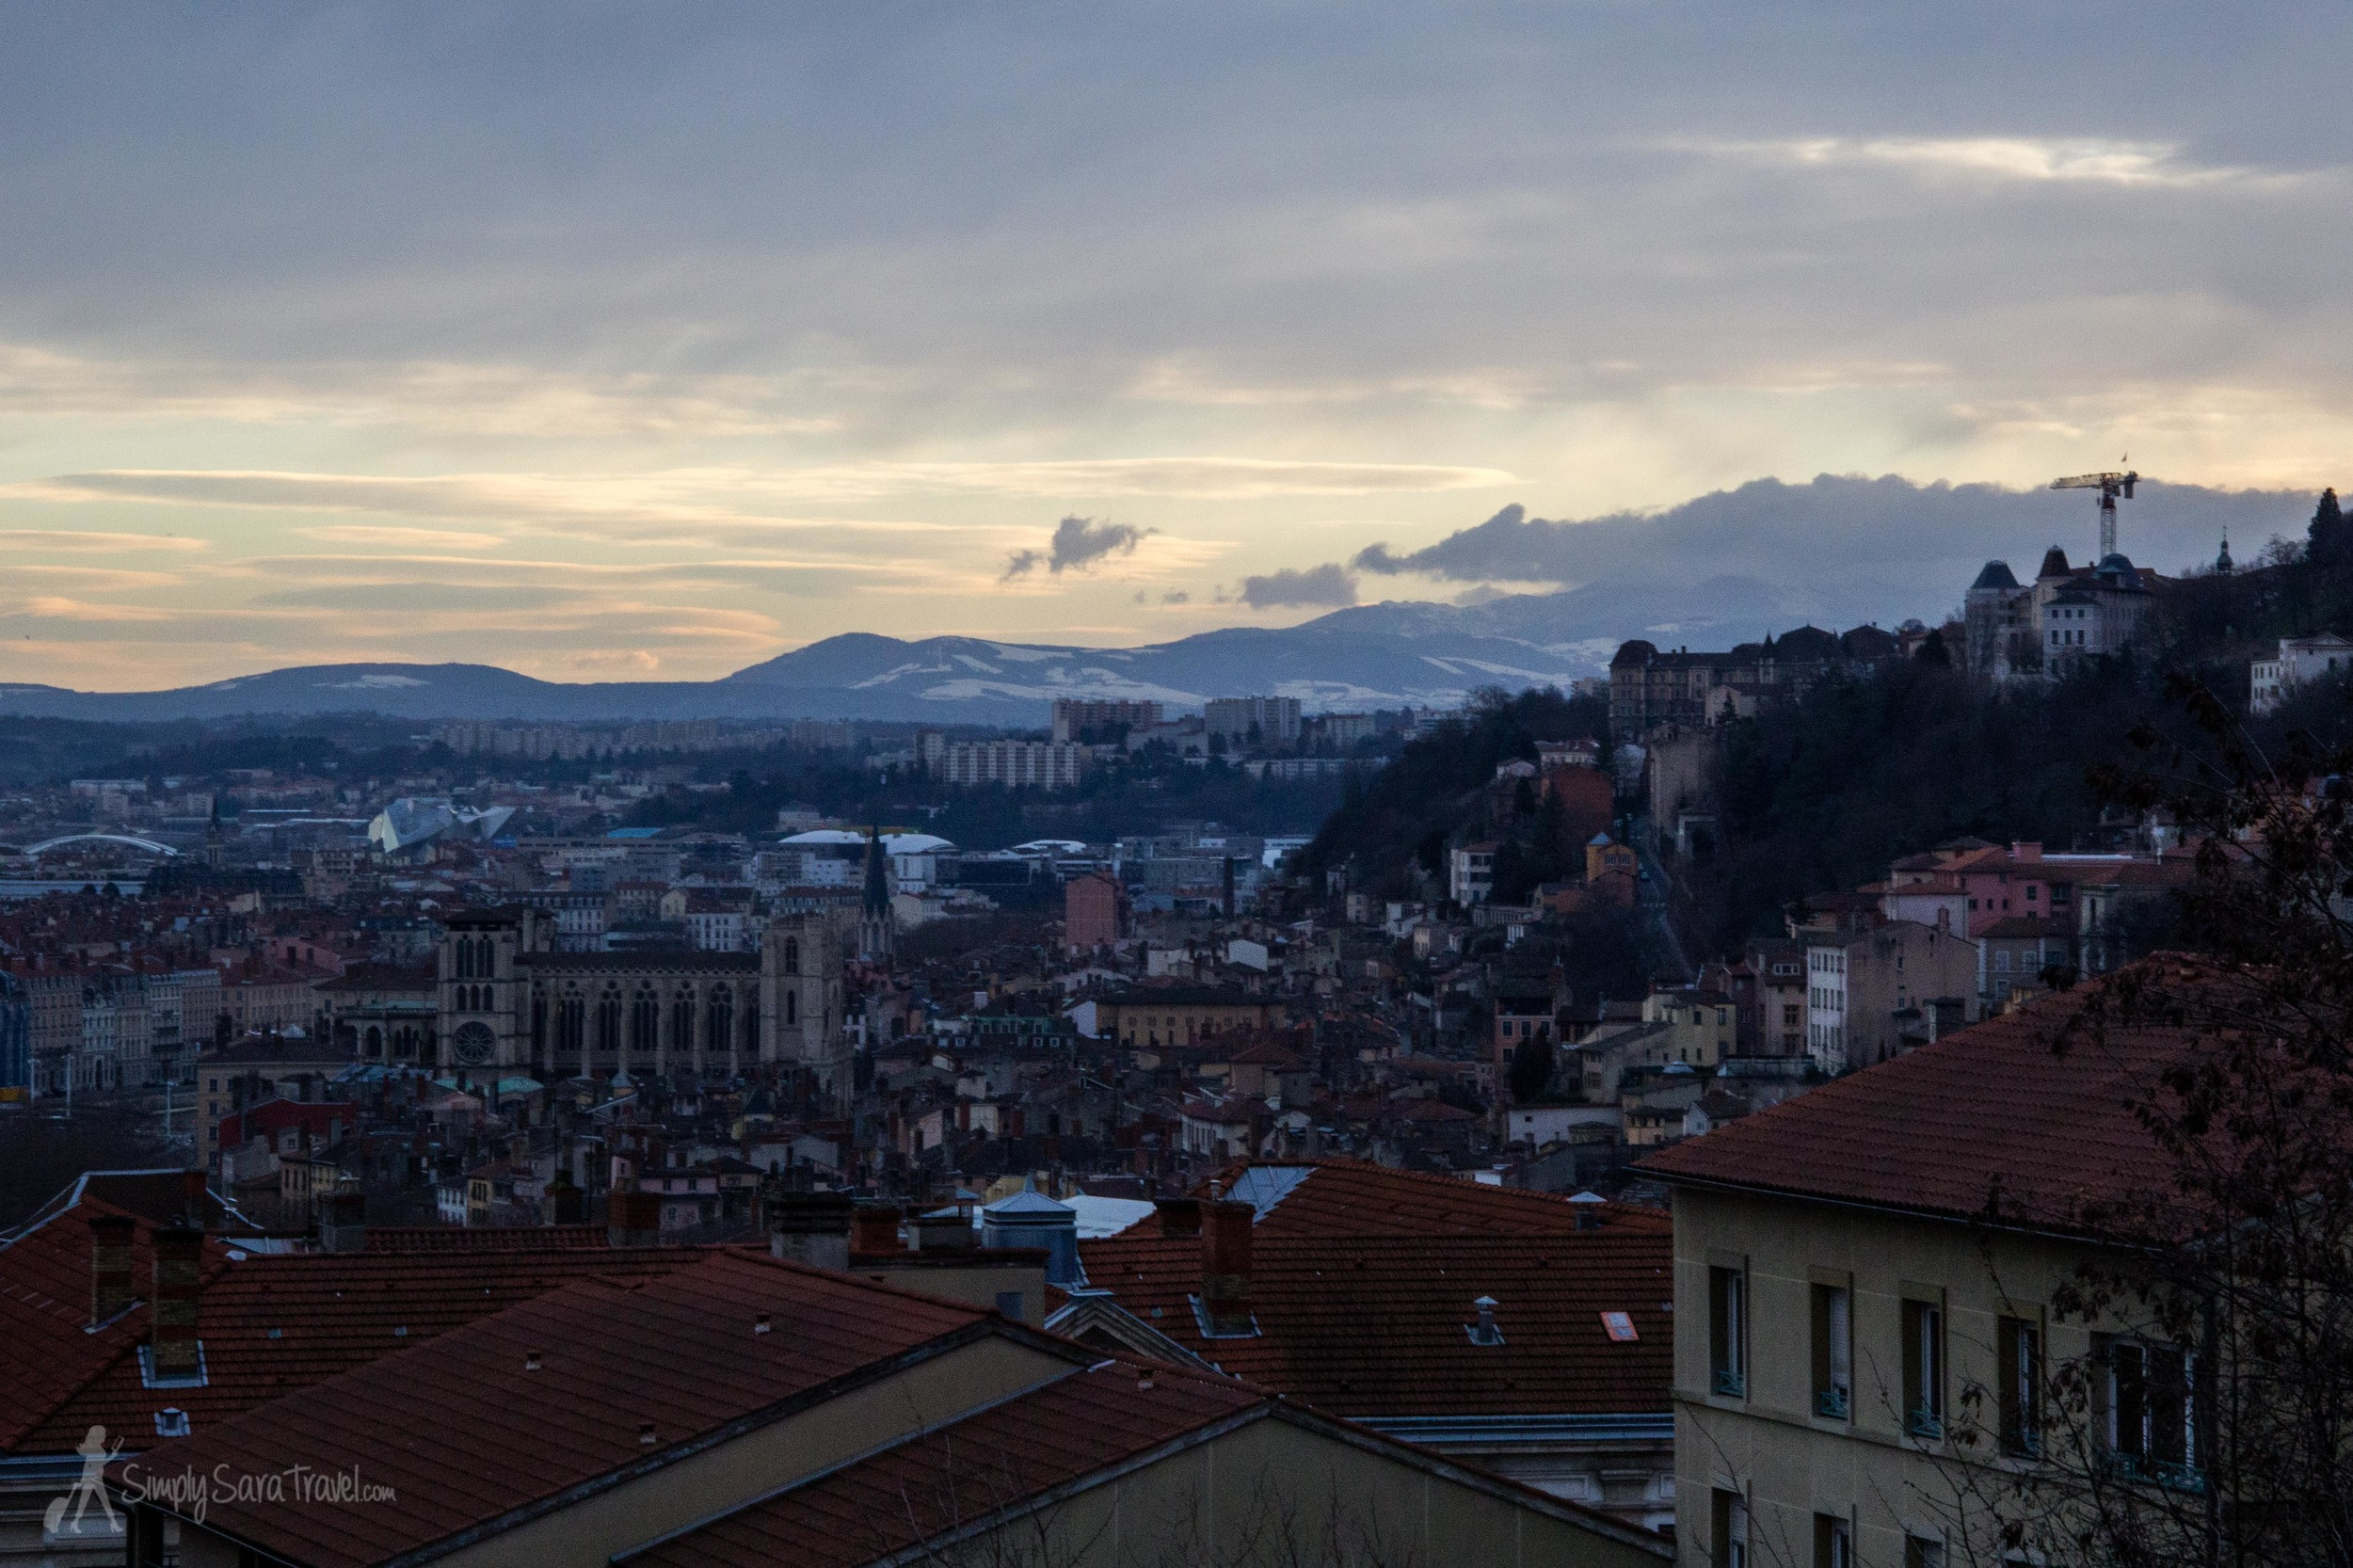 Thankfully the food capital of France is a bit hilly, makes exploring and exercise go hand-in-hand! [Lyon, France]